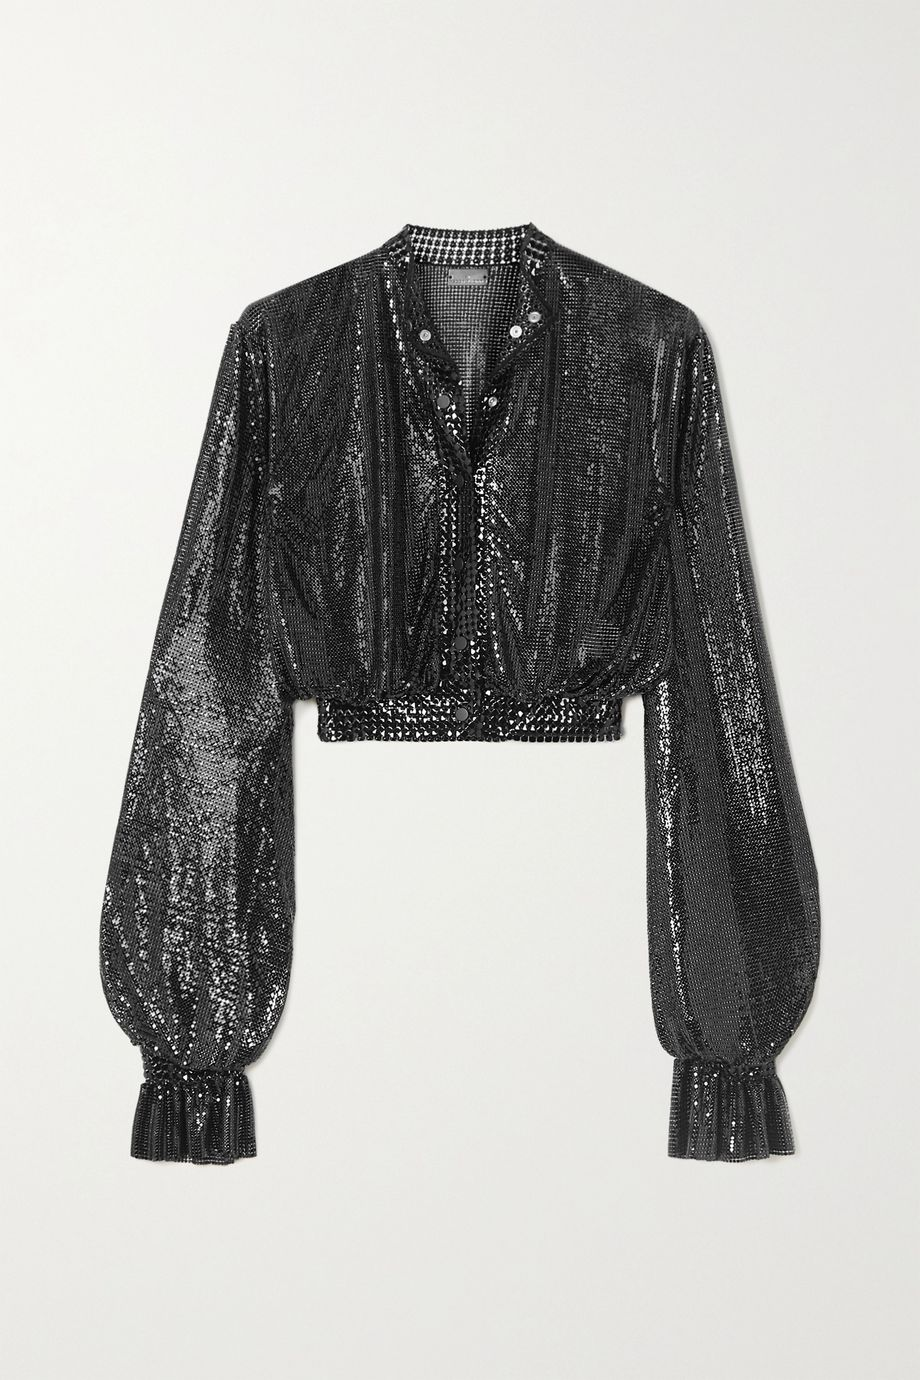 Paco Rabanne Cropped chainmail top